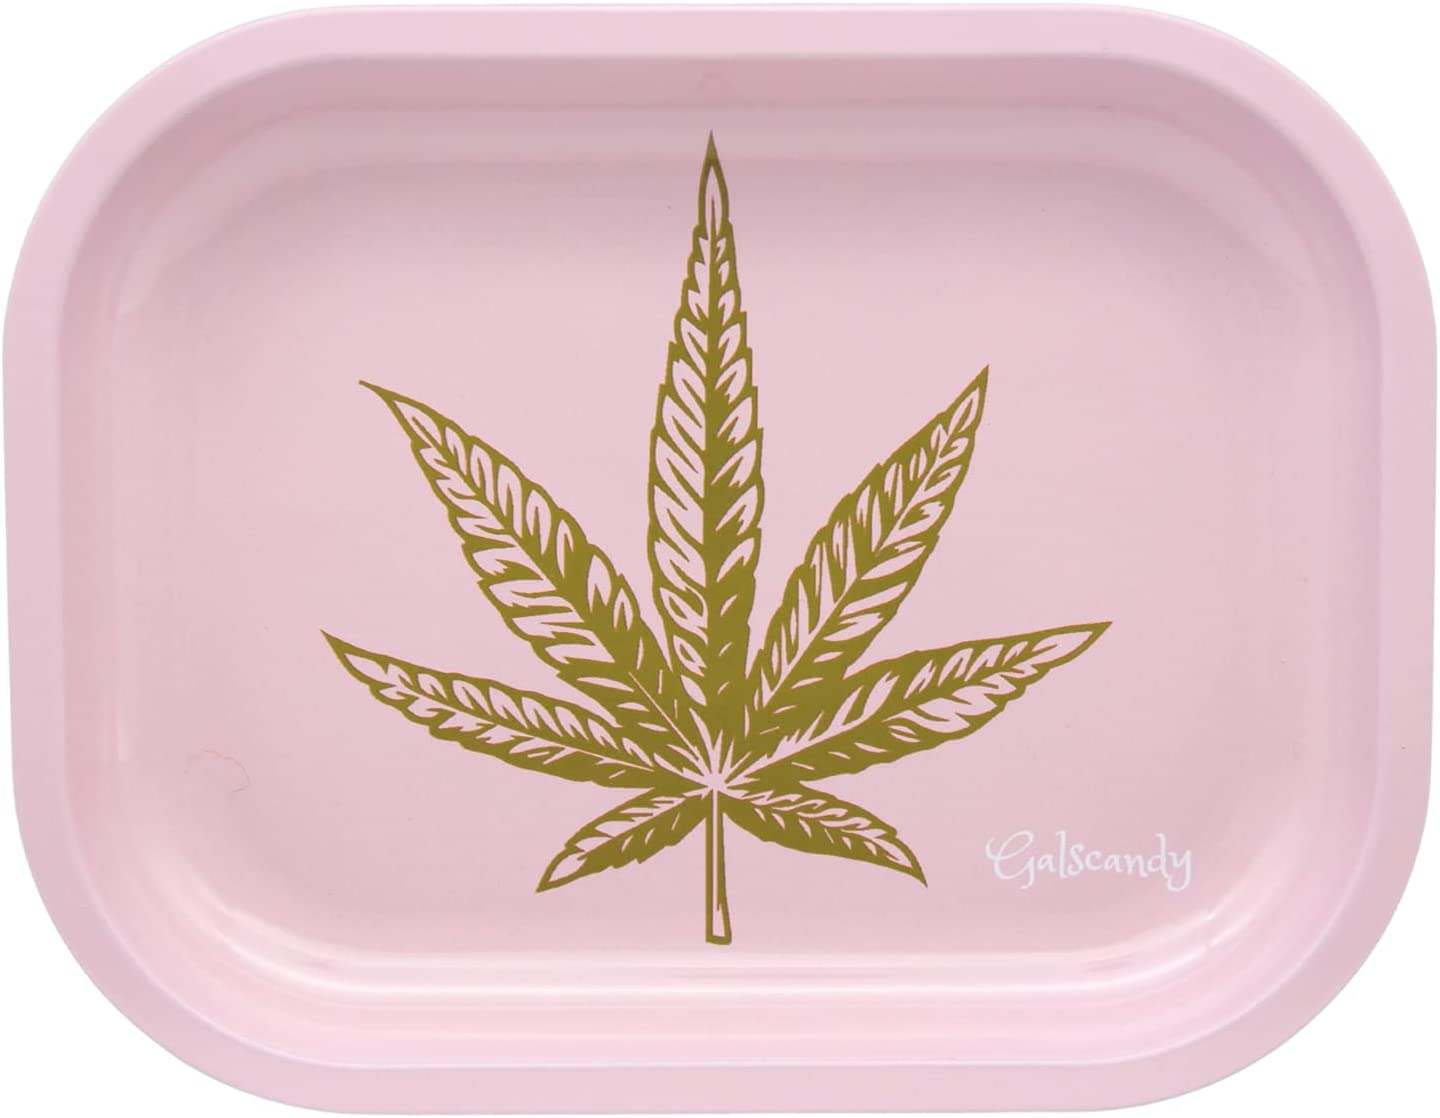 Pink Rolling Tray Max 50% OFF Free shipping New Girly Cute Small Mini -